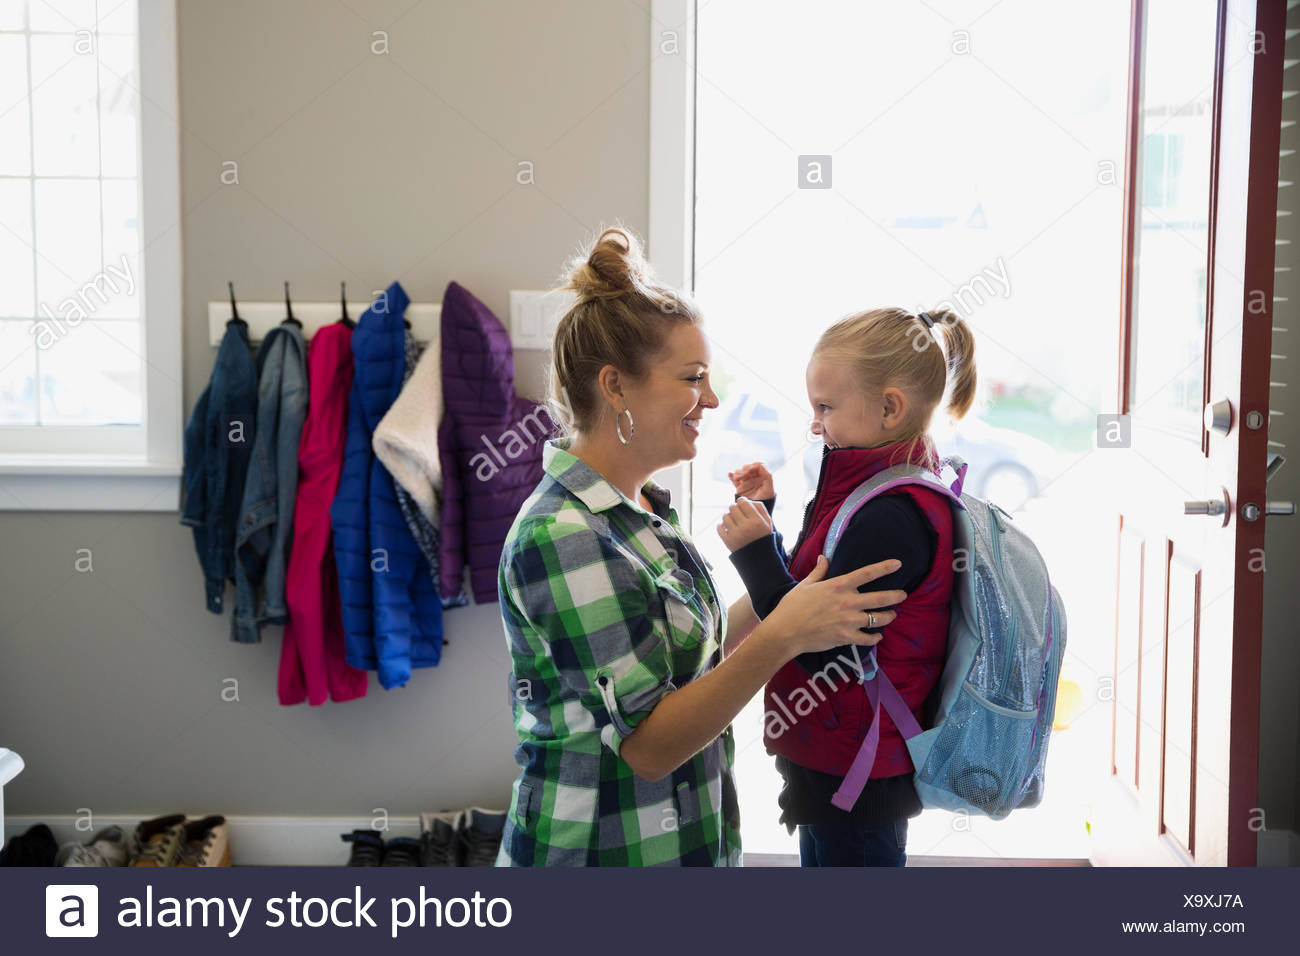 Mother saying goodbye to daughter with backpack - Stock Image